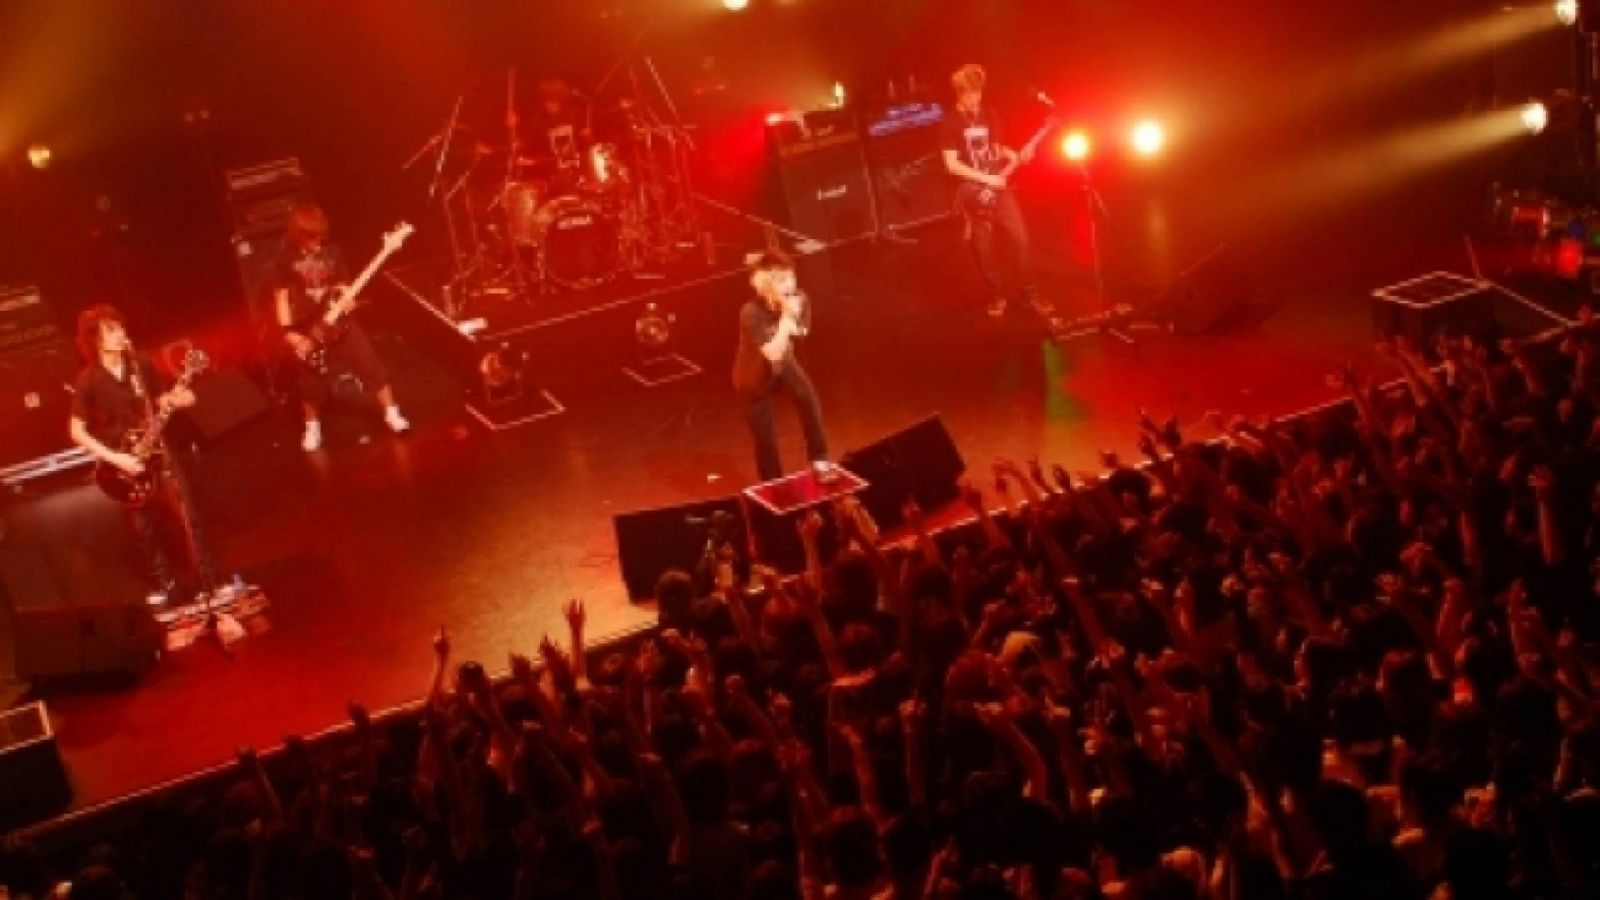 """ONE OK ROCK GIRA 2008 """"WHAT TIME IS IT NOW?"""" © AMUSE - ONE OK ROCK"""